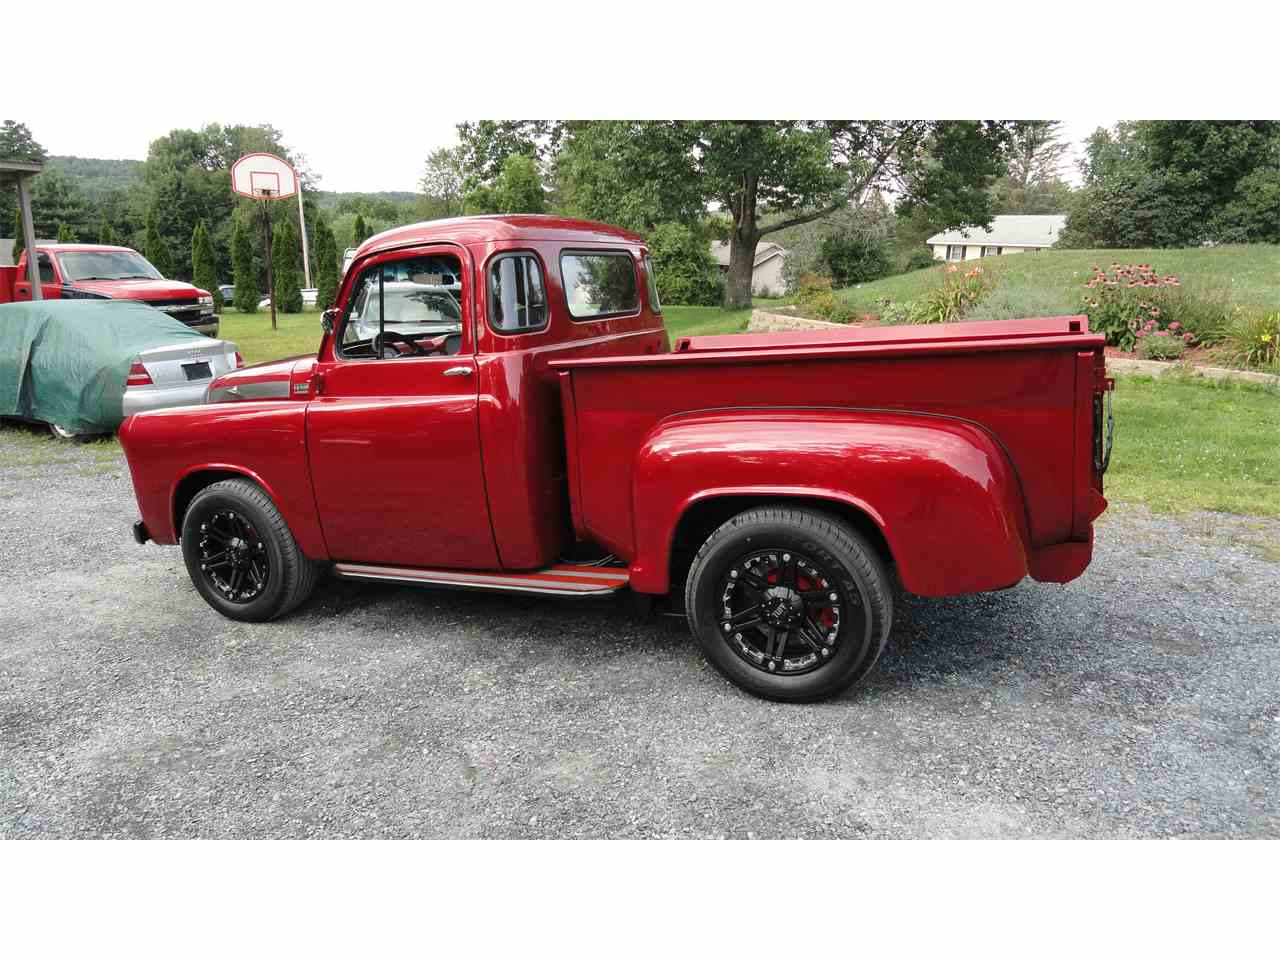 Large Picture of Classic '54 Dodge Pickup located in Claremont New Hampshire - $32,800.00 Offered by a Private Seller - MH4U